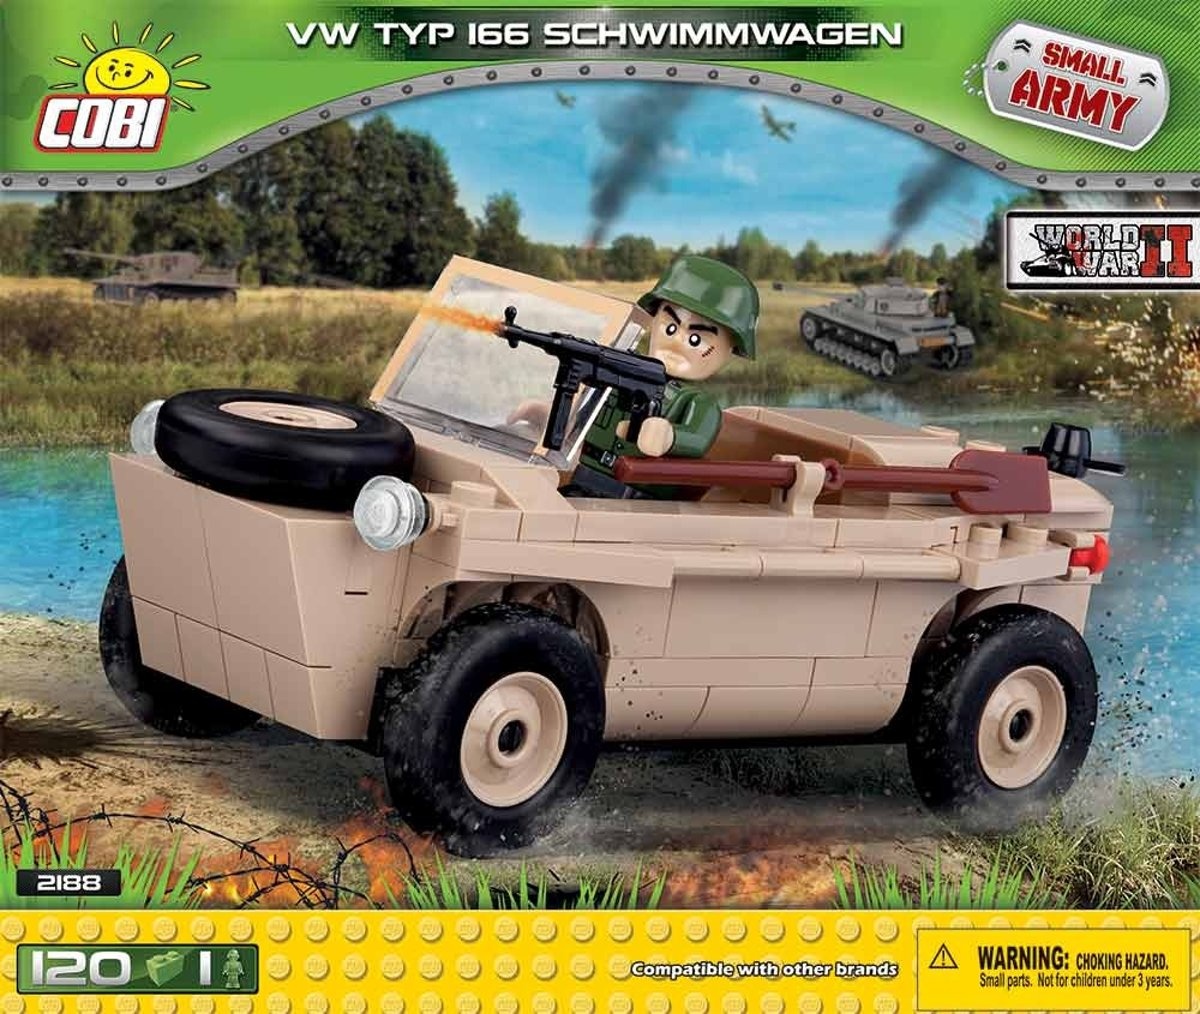 Cobi Small Army Bouwset Vw Schwimmwagen Typ 166 122-delig 2188